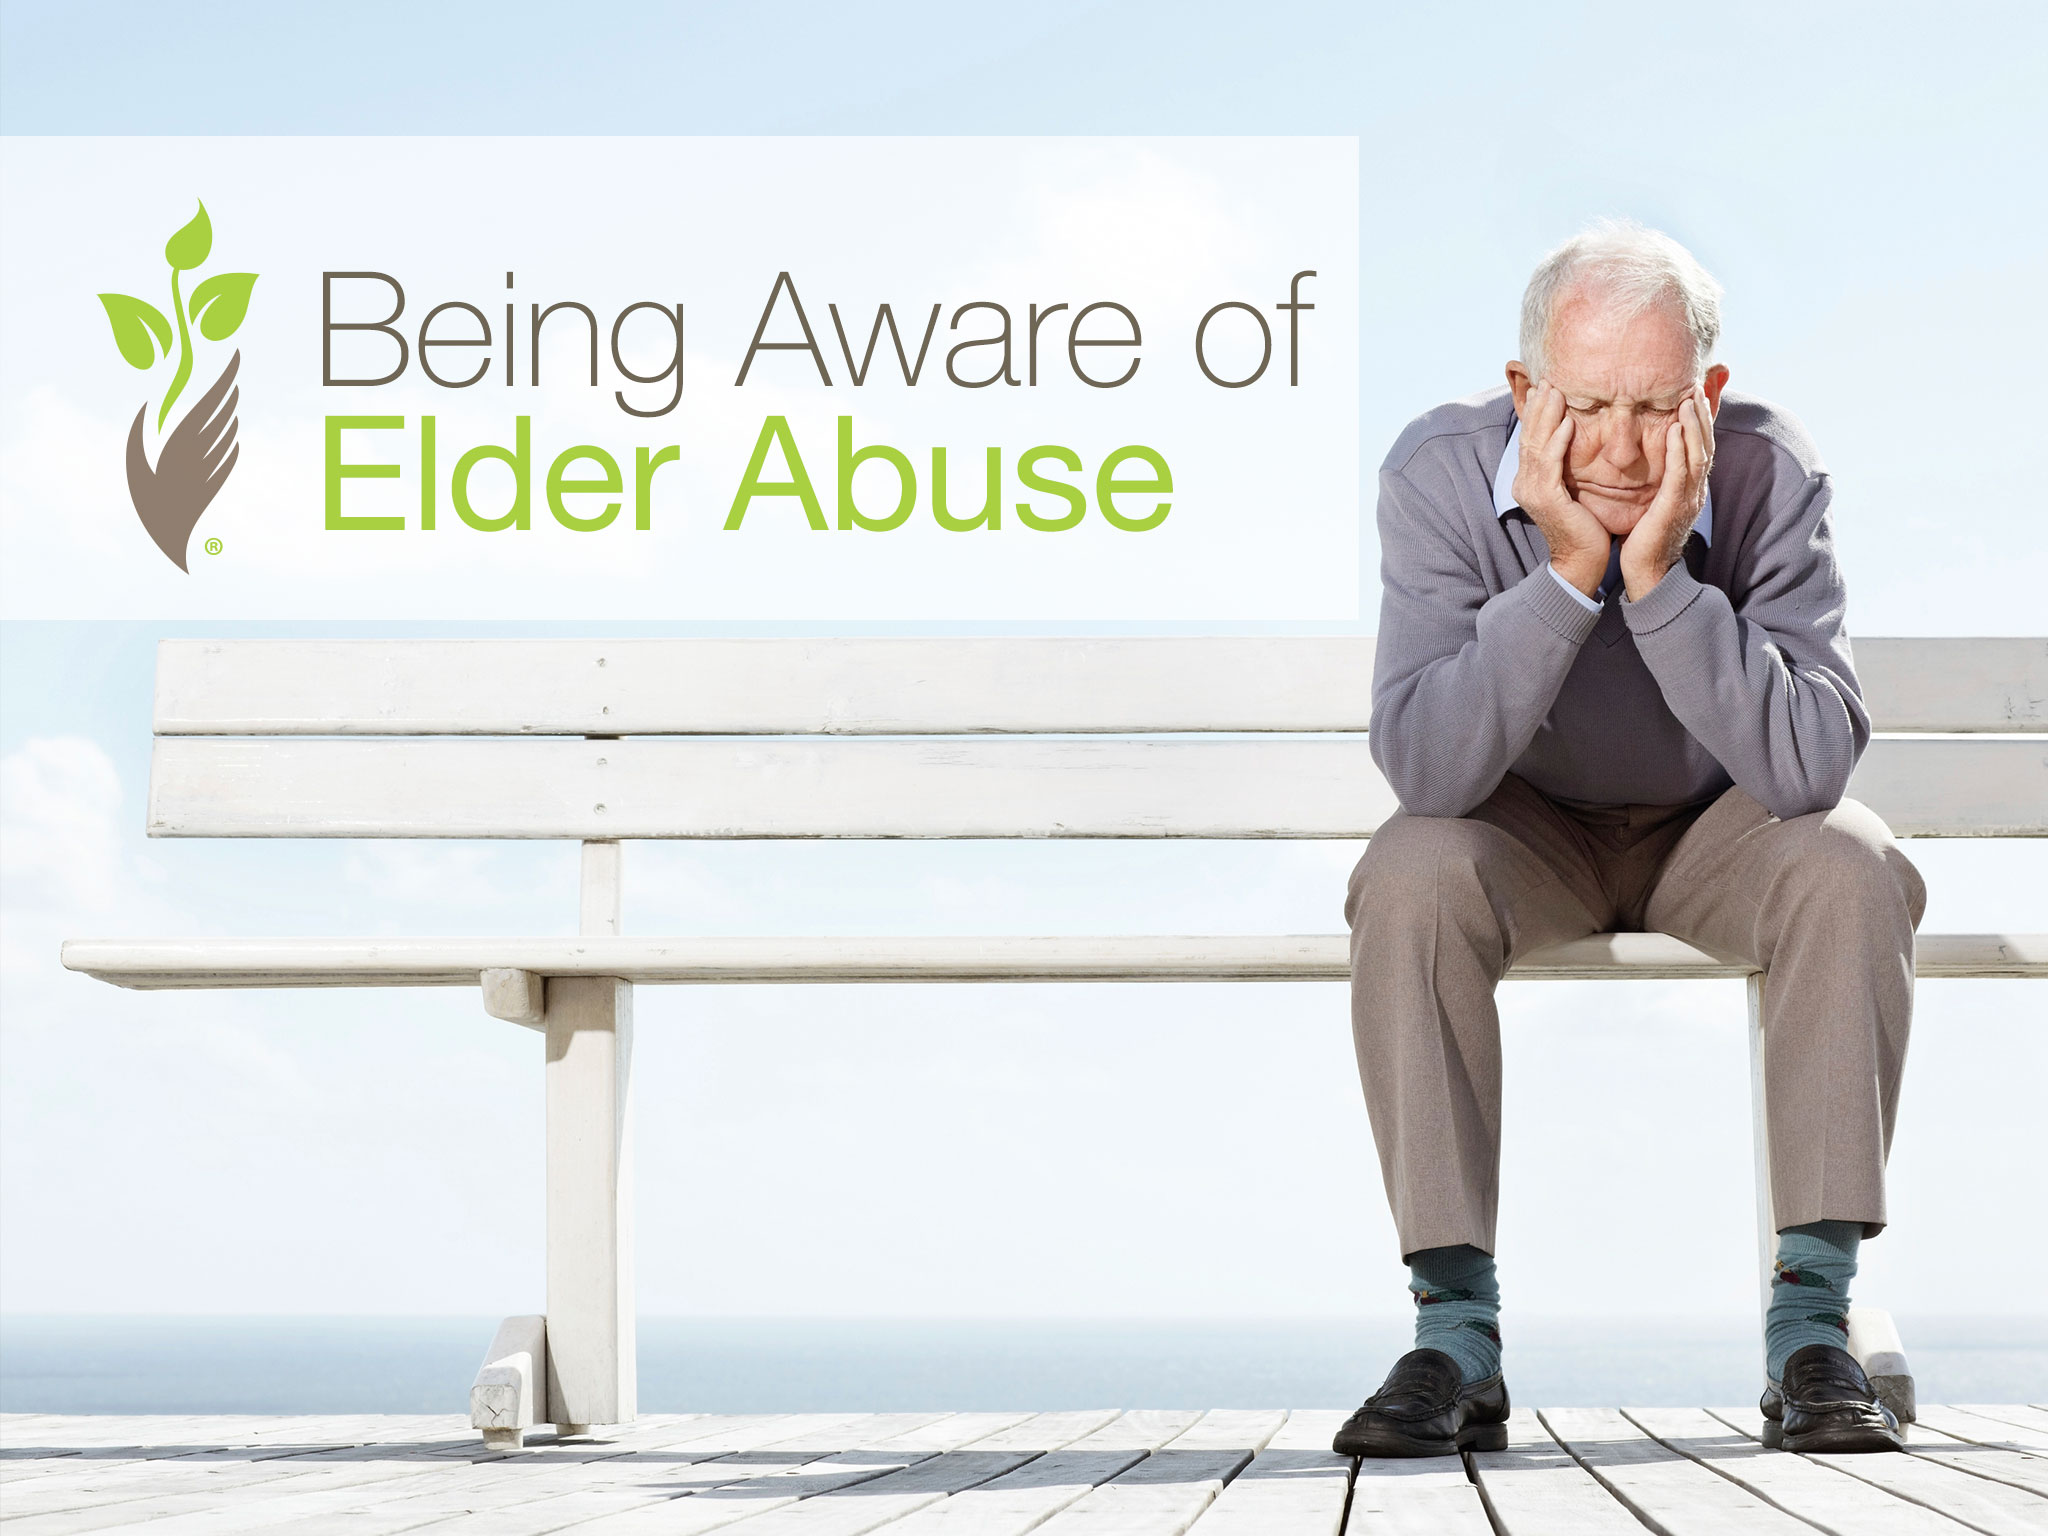 Being Aware of Elder Abuse